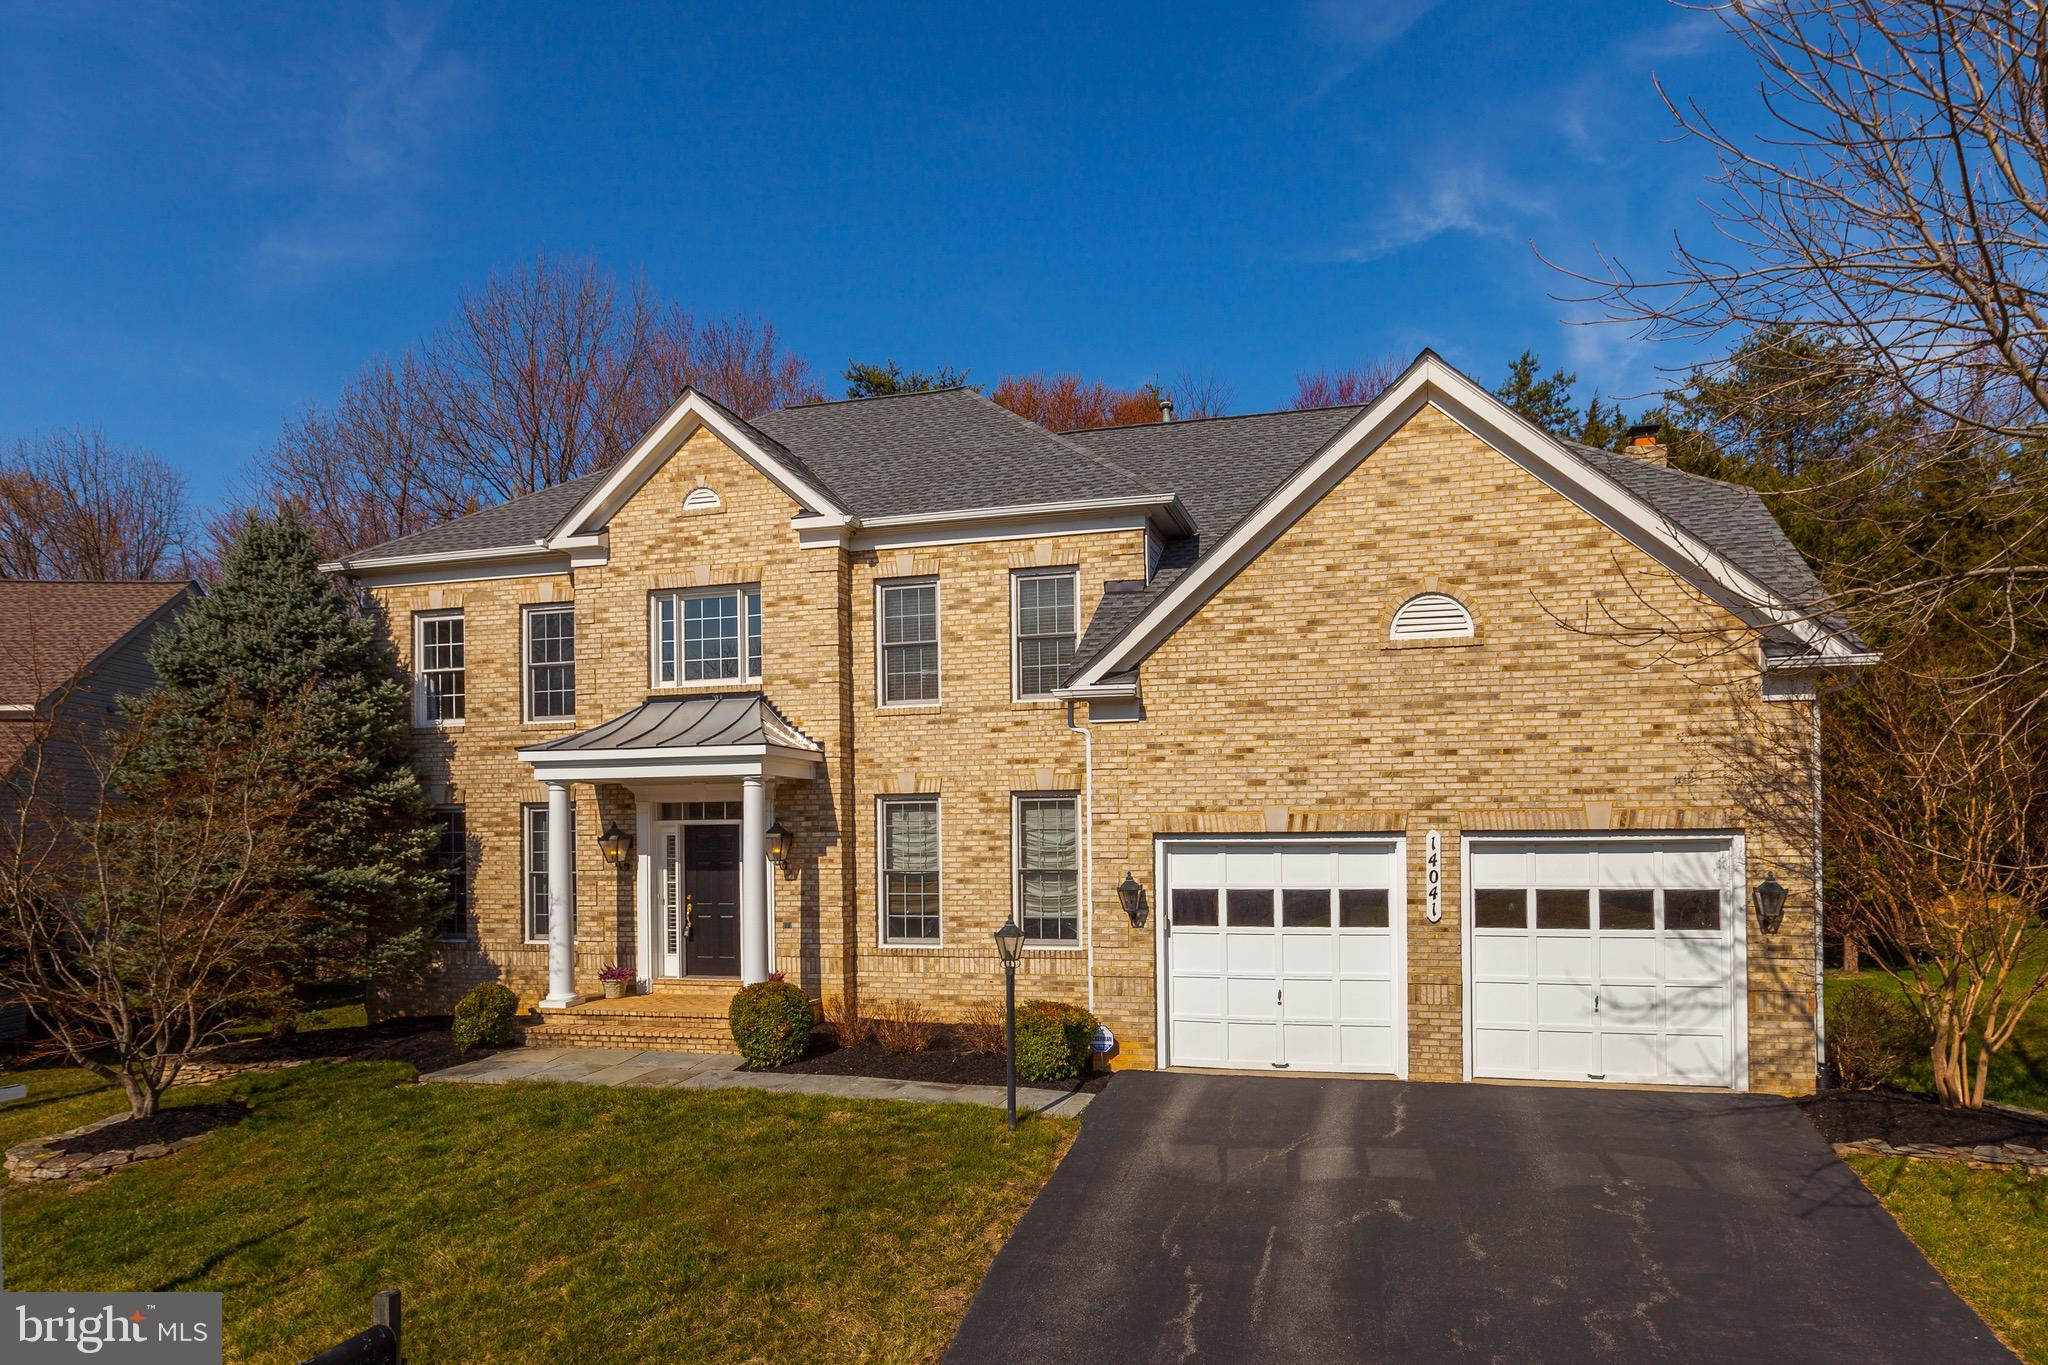 14041 WEEPING CHERRY DRIVE, ROCKVILLE, MD 20850